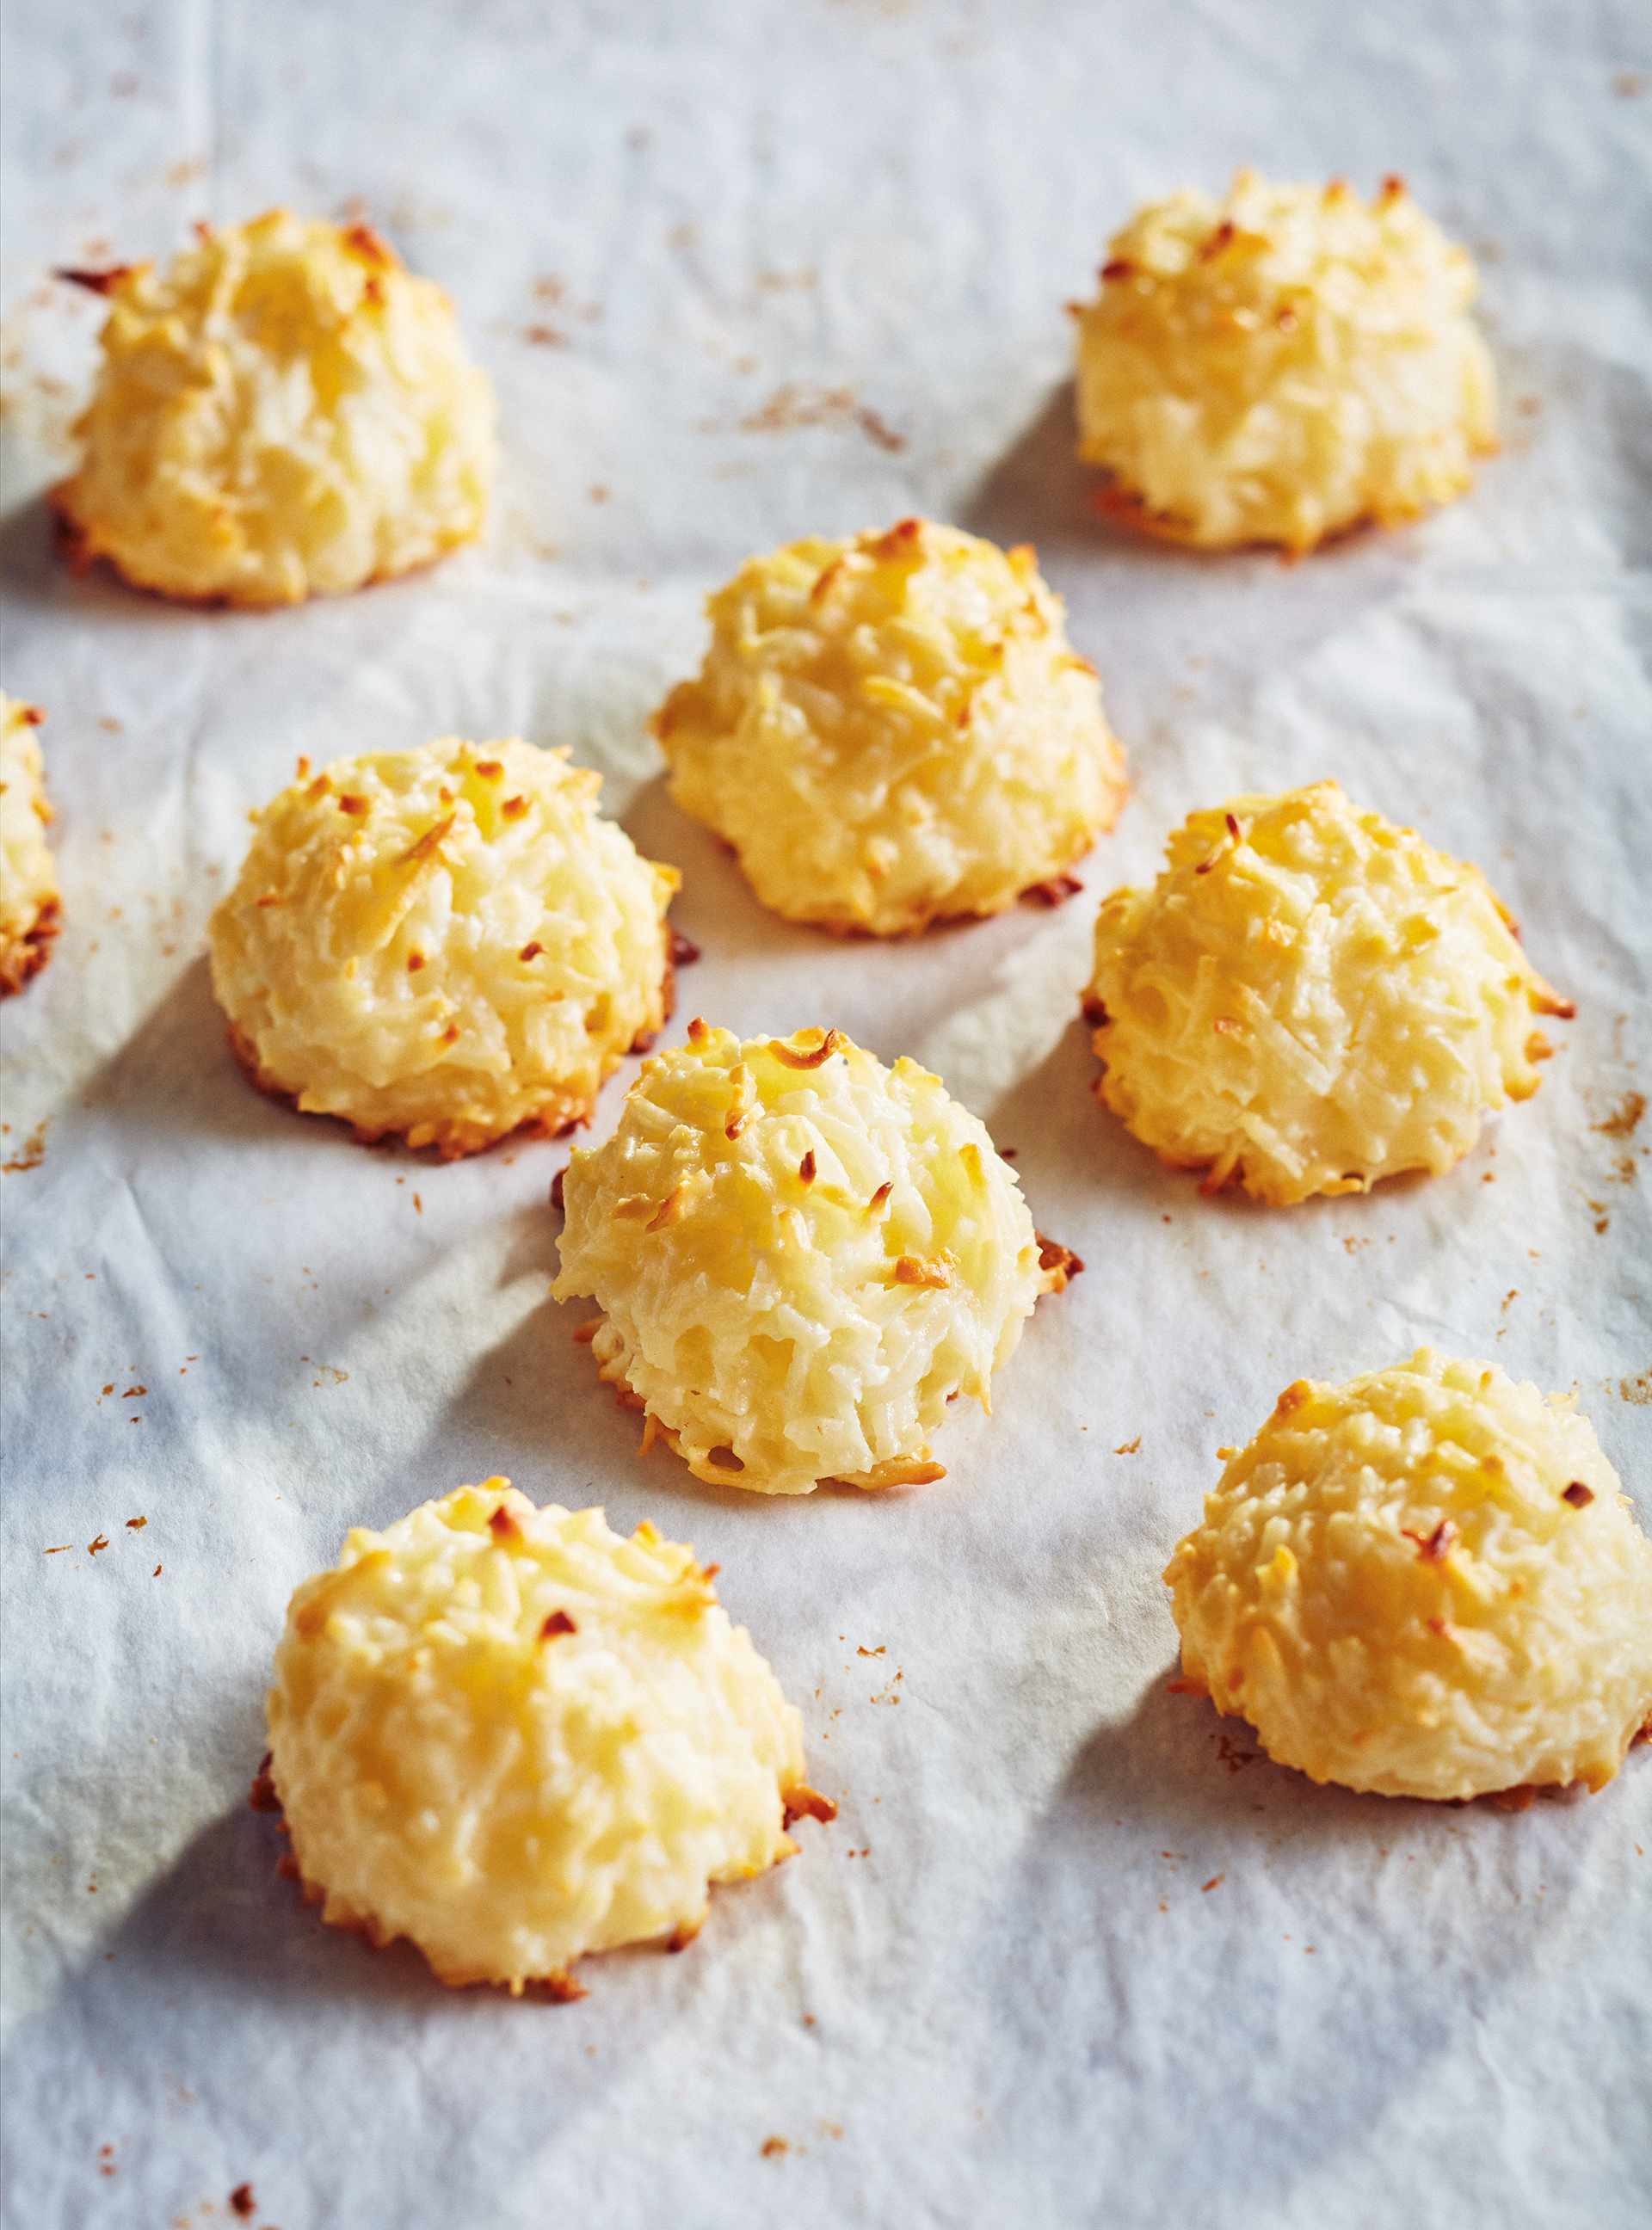 Egg- and Gluten-Free Coconut Macaroons